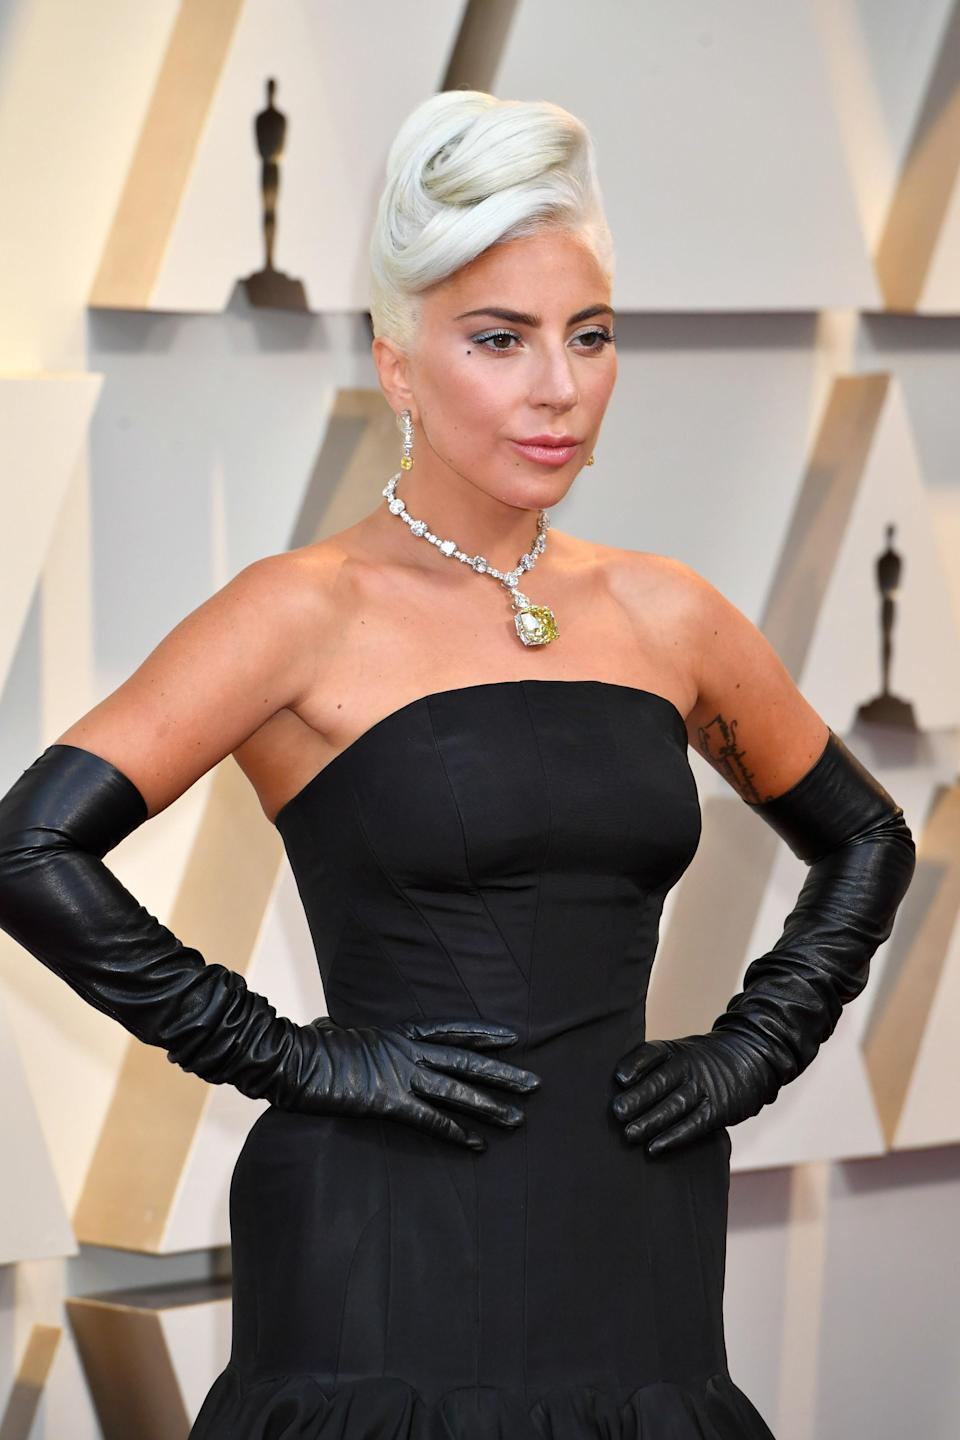 """An unnamed source told <a href=""""https://www.usmagazine.com/celebrity-news/news/lady-gaga-splits-from-dan-horton-after-nearly-3-months/"""" rel=""""nofollow noopener"""" target=""""_blank"""" data-ylk=""""slk:Us Magazine"""" class=""""link rapid-noclick-resp""""><em>Us Magazine</em></a> that Lady Gaga and sound engineer Dan Horton have ended their relationship. She seemed to confirm the news by referring to herself as a """"single lady"""" in an Instagram story posted from a friend's bachelorette party. Lady Gaga and Horton were first linked in July, following her <a href=""""https://www.glamour.com/story/lady-gaga-and-christian-carino-have-split?mbid=synd_yahoo_rss"""" rel=""""nofollow noopener"""" target=""""_blank"""" data-ylk=""""slk:split"""" class=""""link rapid-noclick-resp"""">split</a> from fiancé Christian Carino in February. Lady Gaga kept her relationship with Horton tightly under wraps—so much so that they weren't publicly photographed together."""